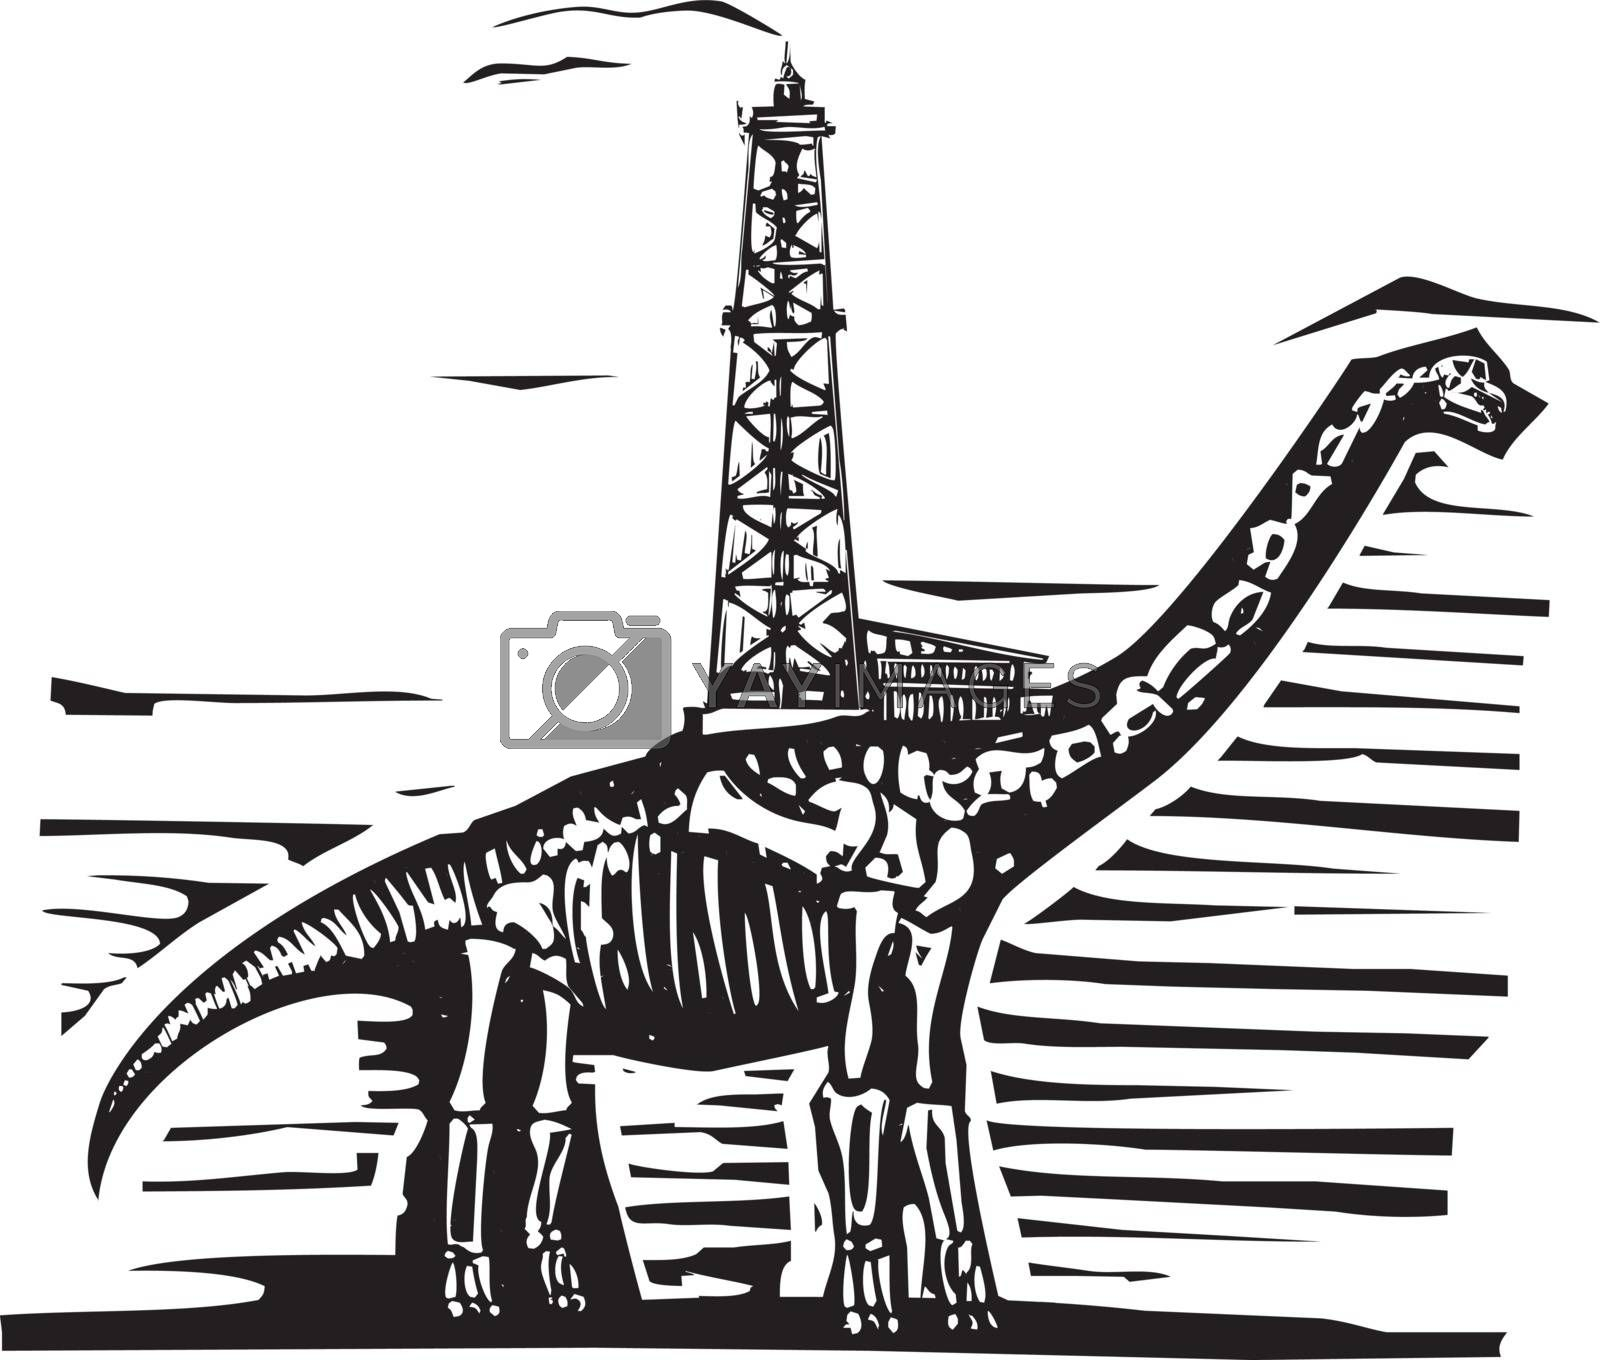 Woodcut style image of a fossil of a brontosaurus apatosaurus dinosaur with an oil well on its back.